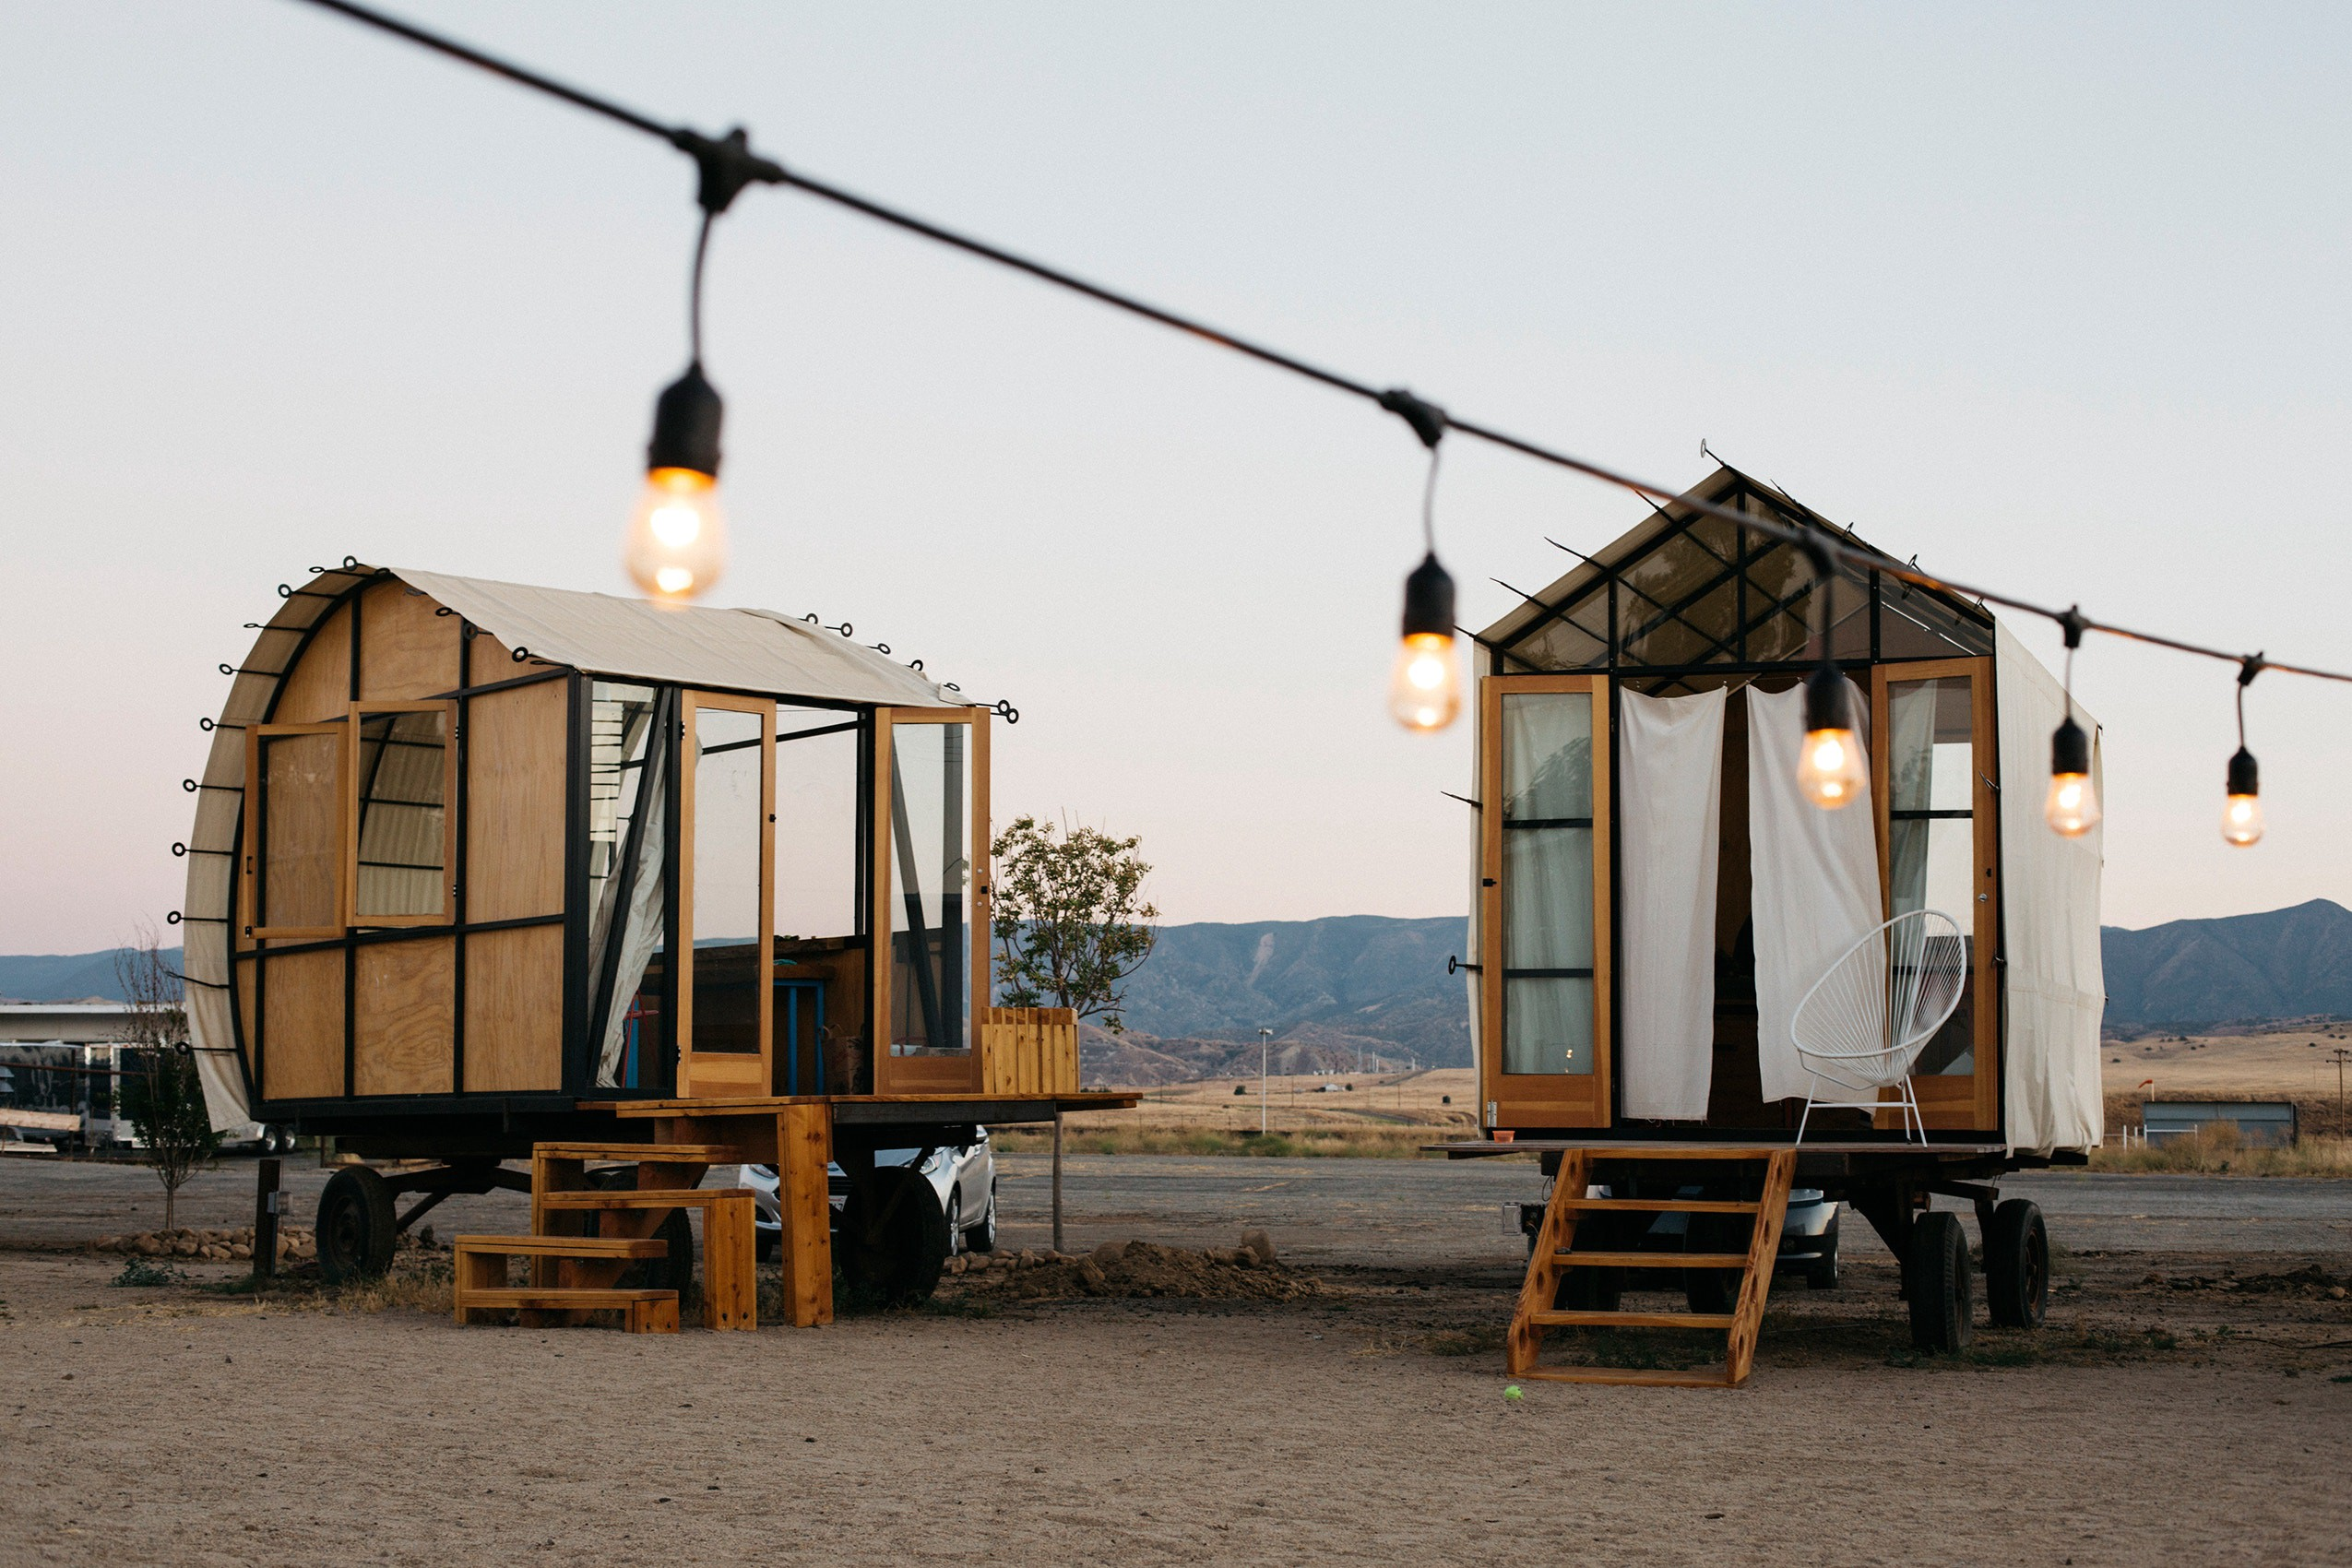 The Rise of Modern Prefab Cabins - Tacos & Tequila - Medium